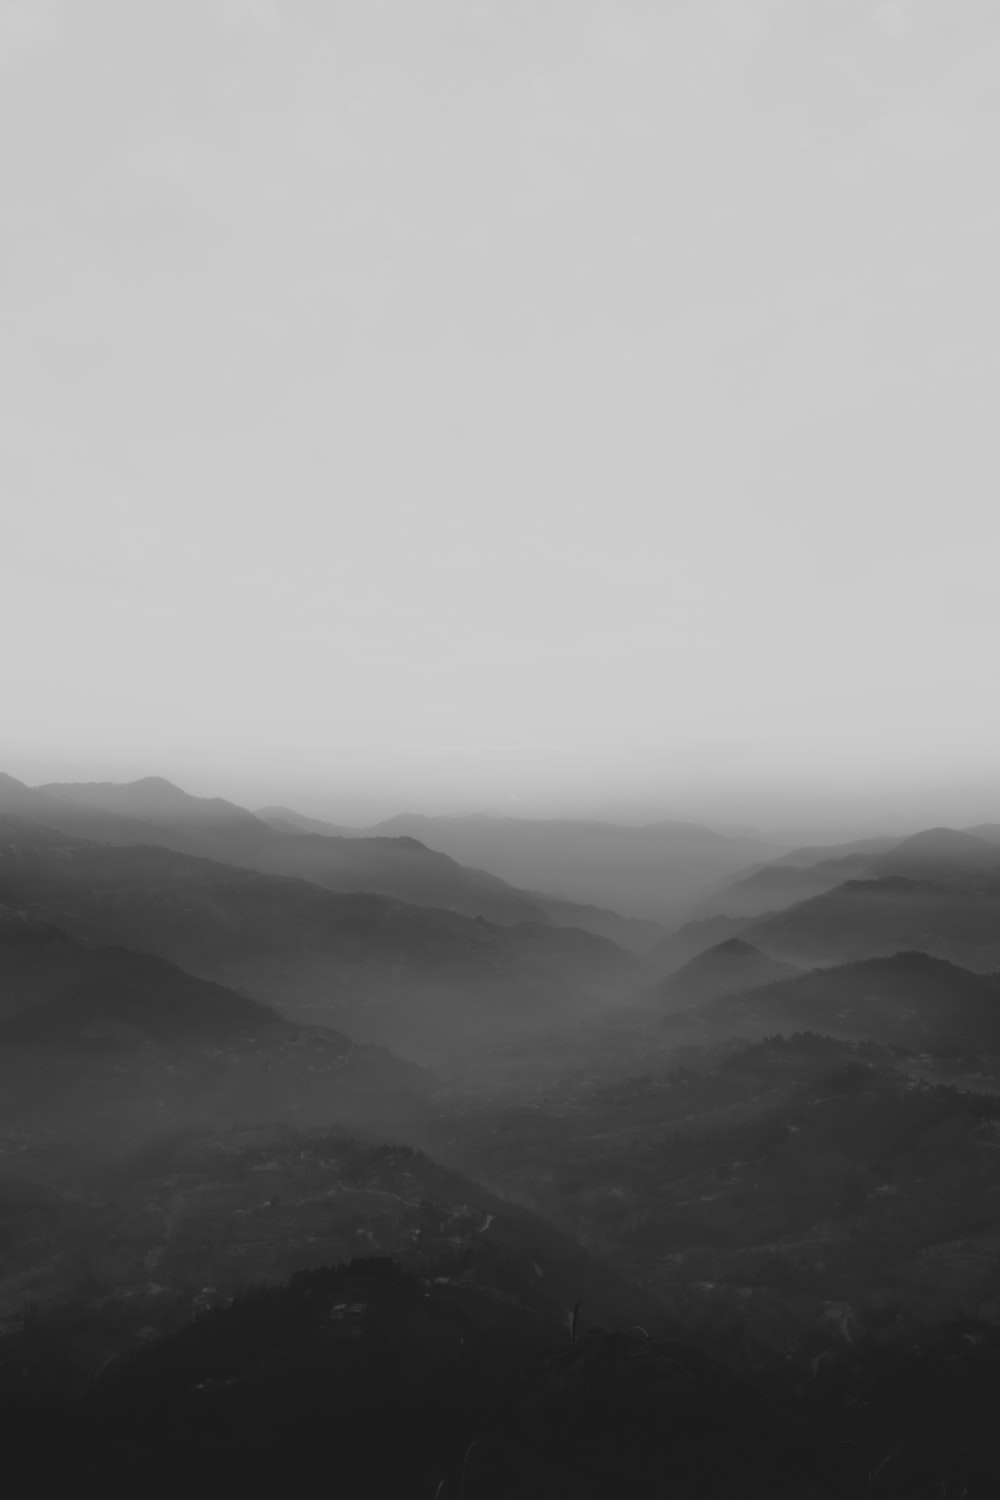 mountains covered with fog during daytime